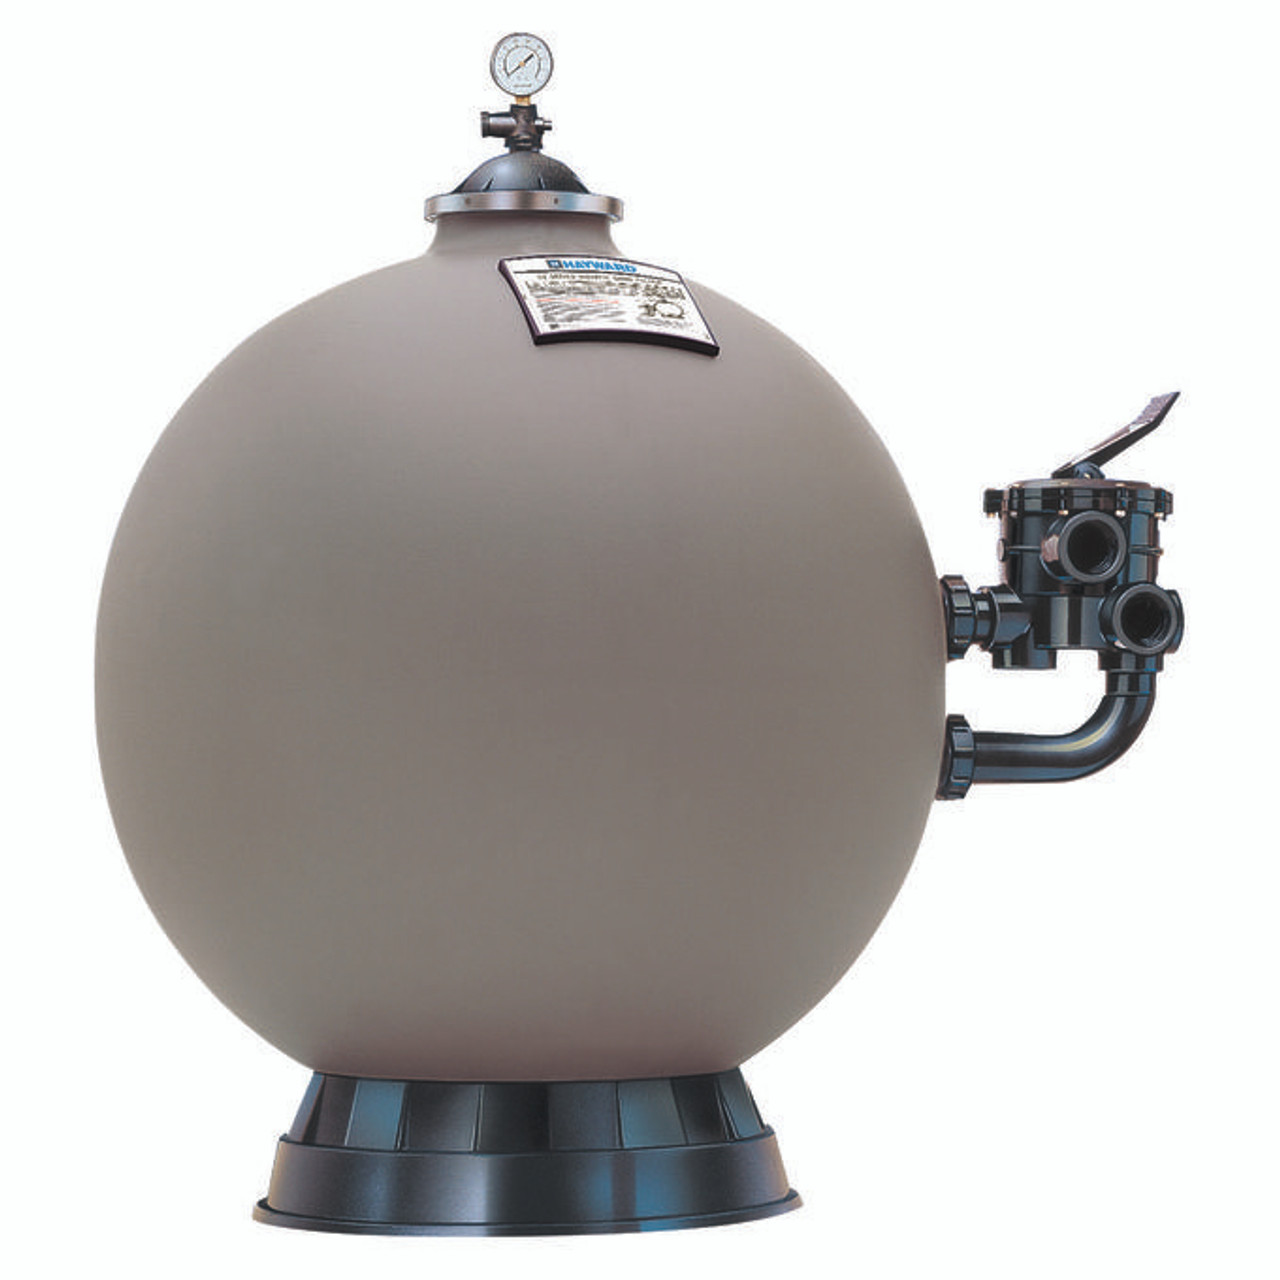 "Hayward LS Series Aquatic Sand Filter, 46"" High X 36"" Diameter (LS360SX)"